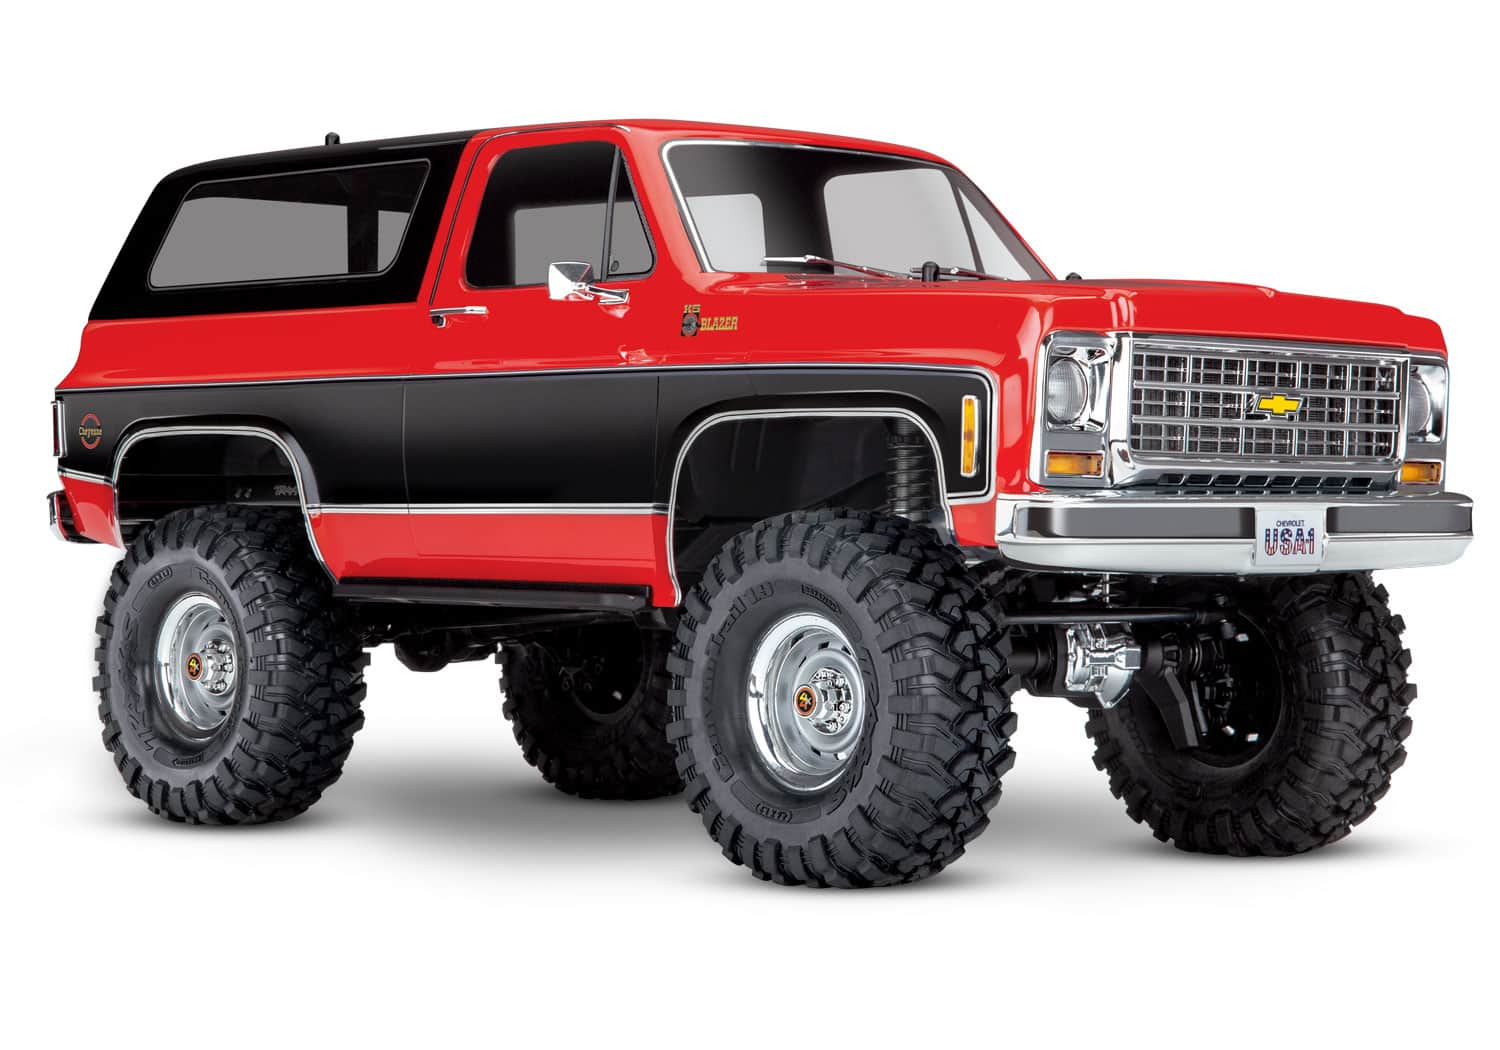 The Traxxas Trx 4 Lineup Branches Out With The 1979 Chevy K5 Blazer